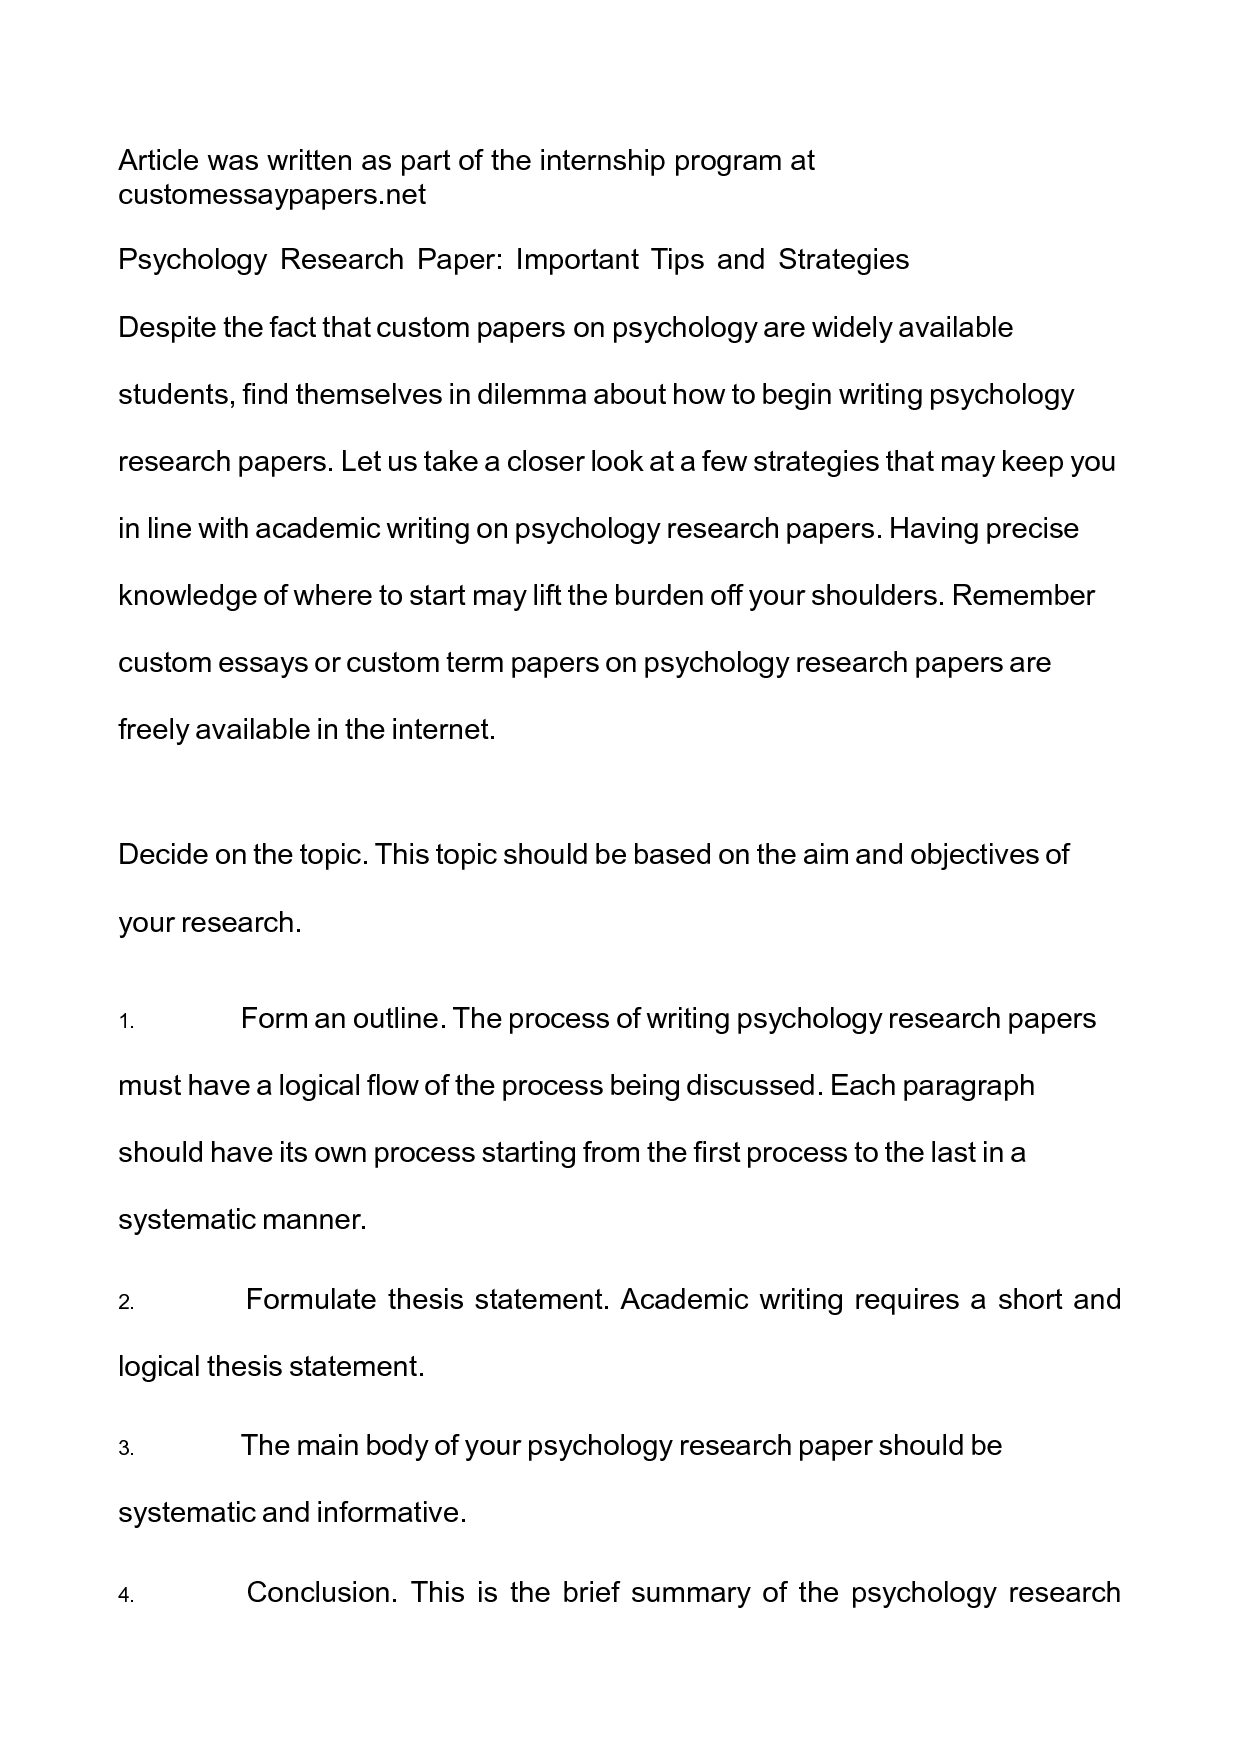 024 Psychology Research Paper Writing Archaicawful Services In Pakistan Mumbai Academic India Full